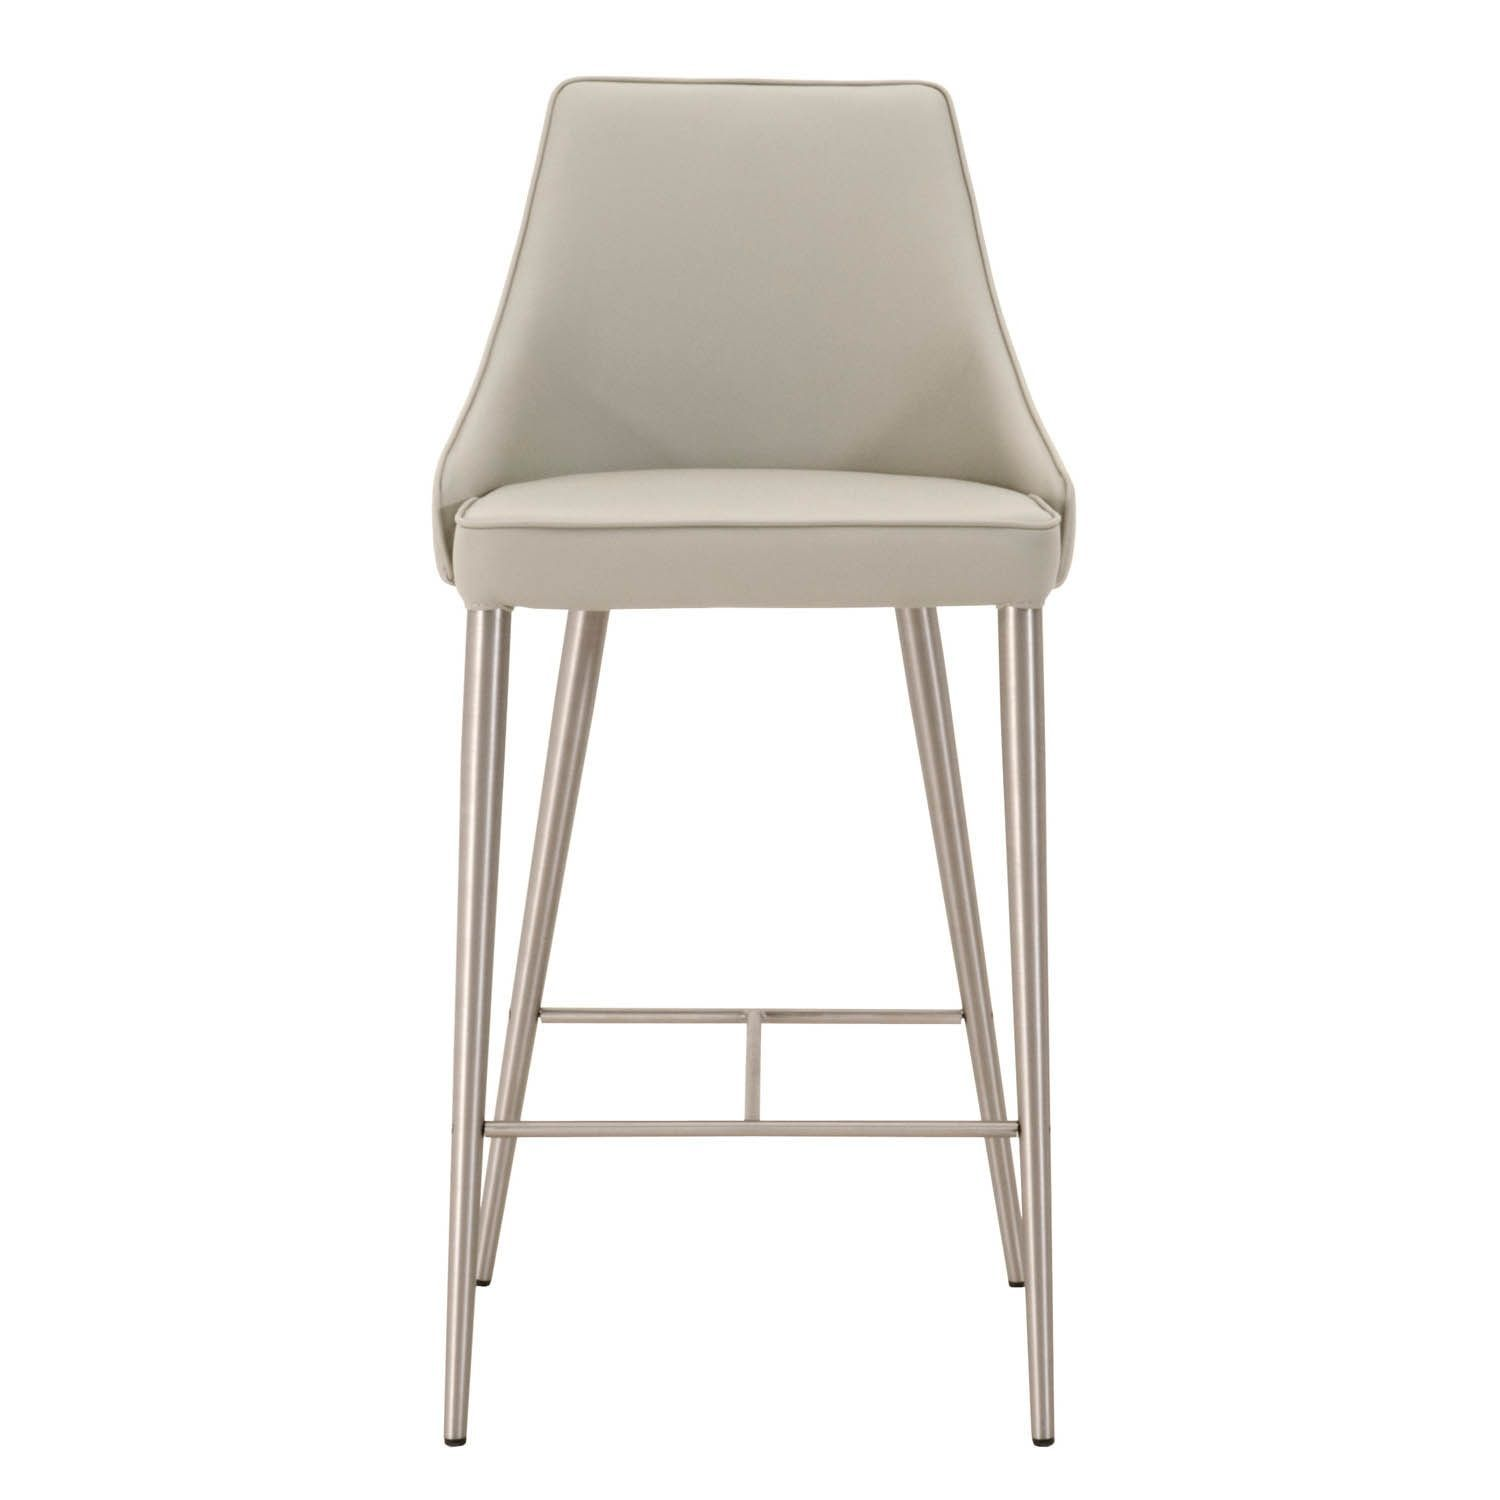 Incredible Modern Life Ira Light Grey Faux Leather And Stainless Steel Gmtry Best Dining Table And Chair Ideas Images Gmtryco